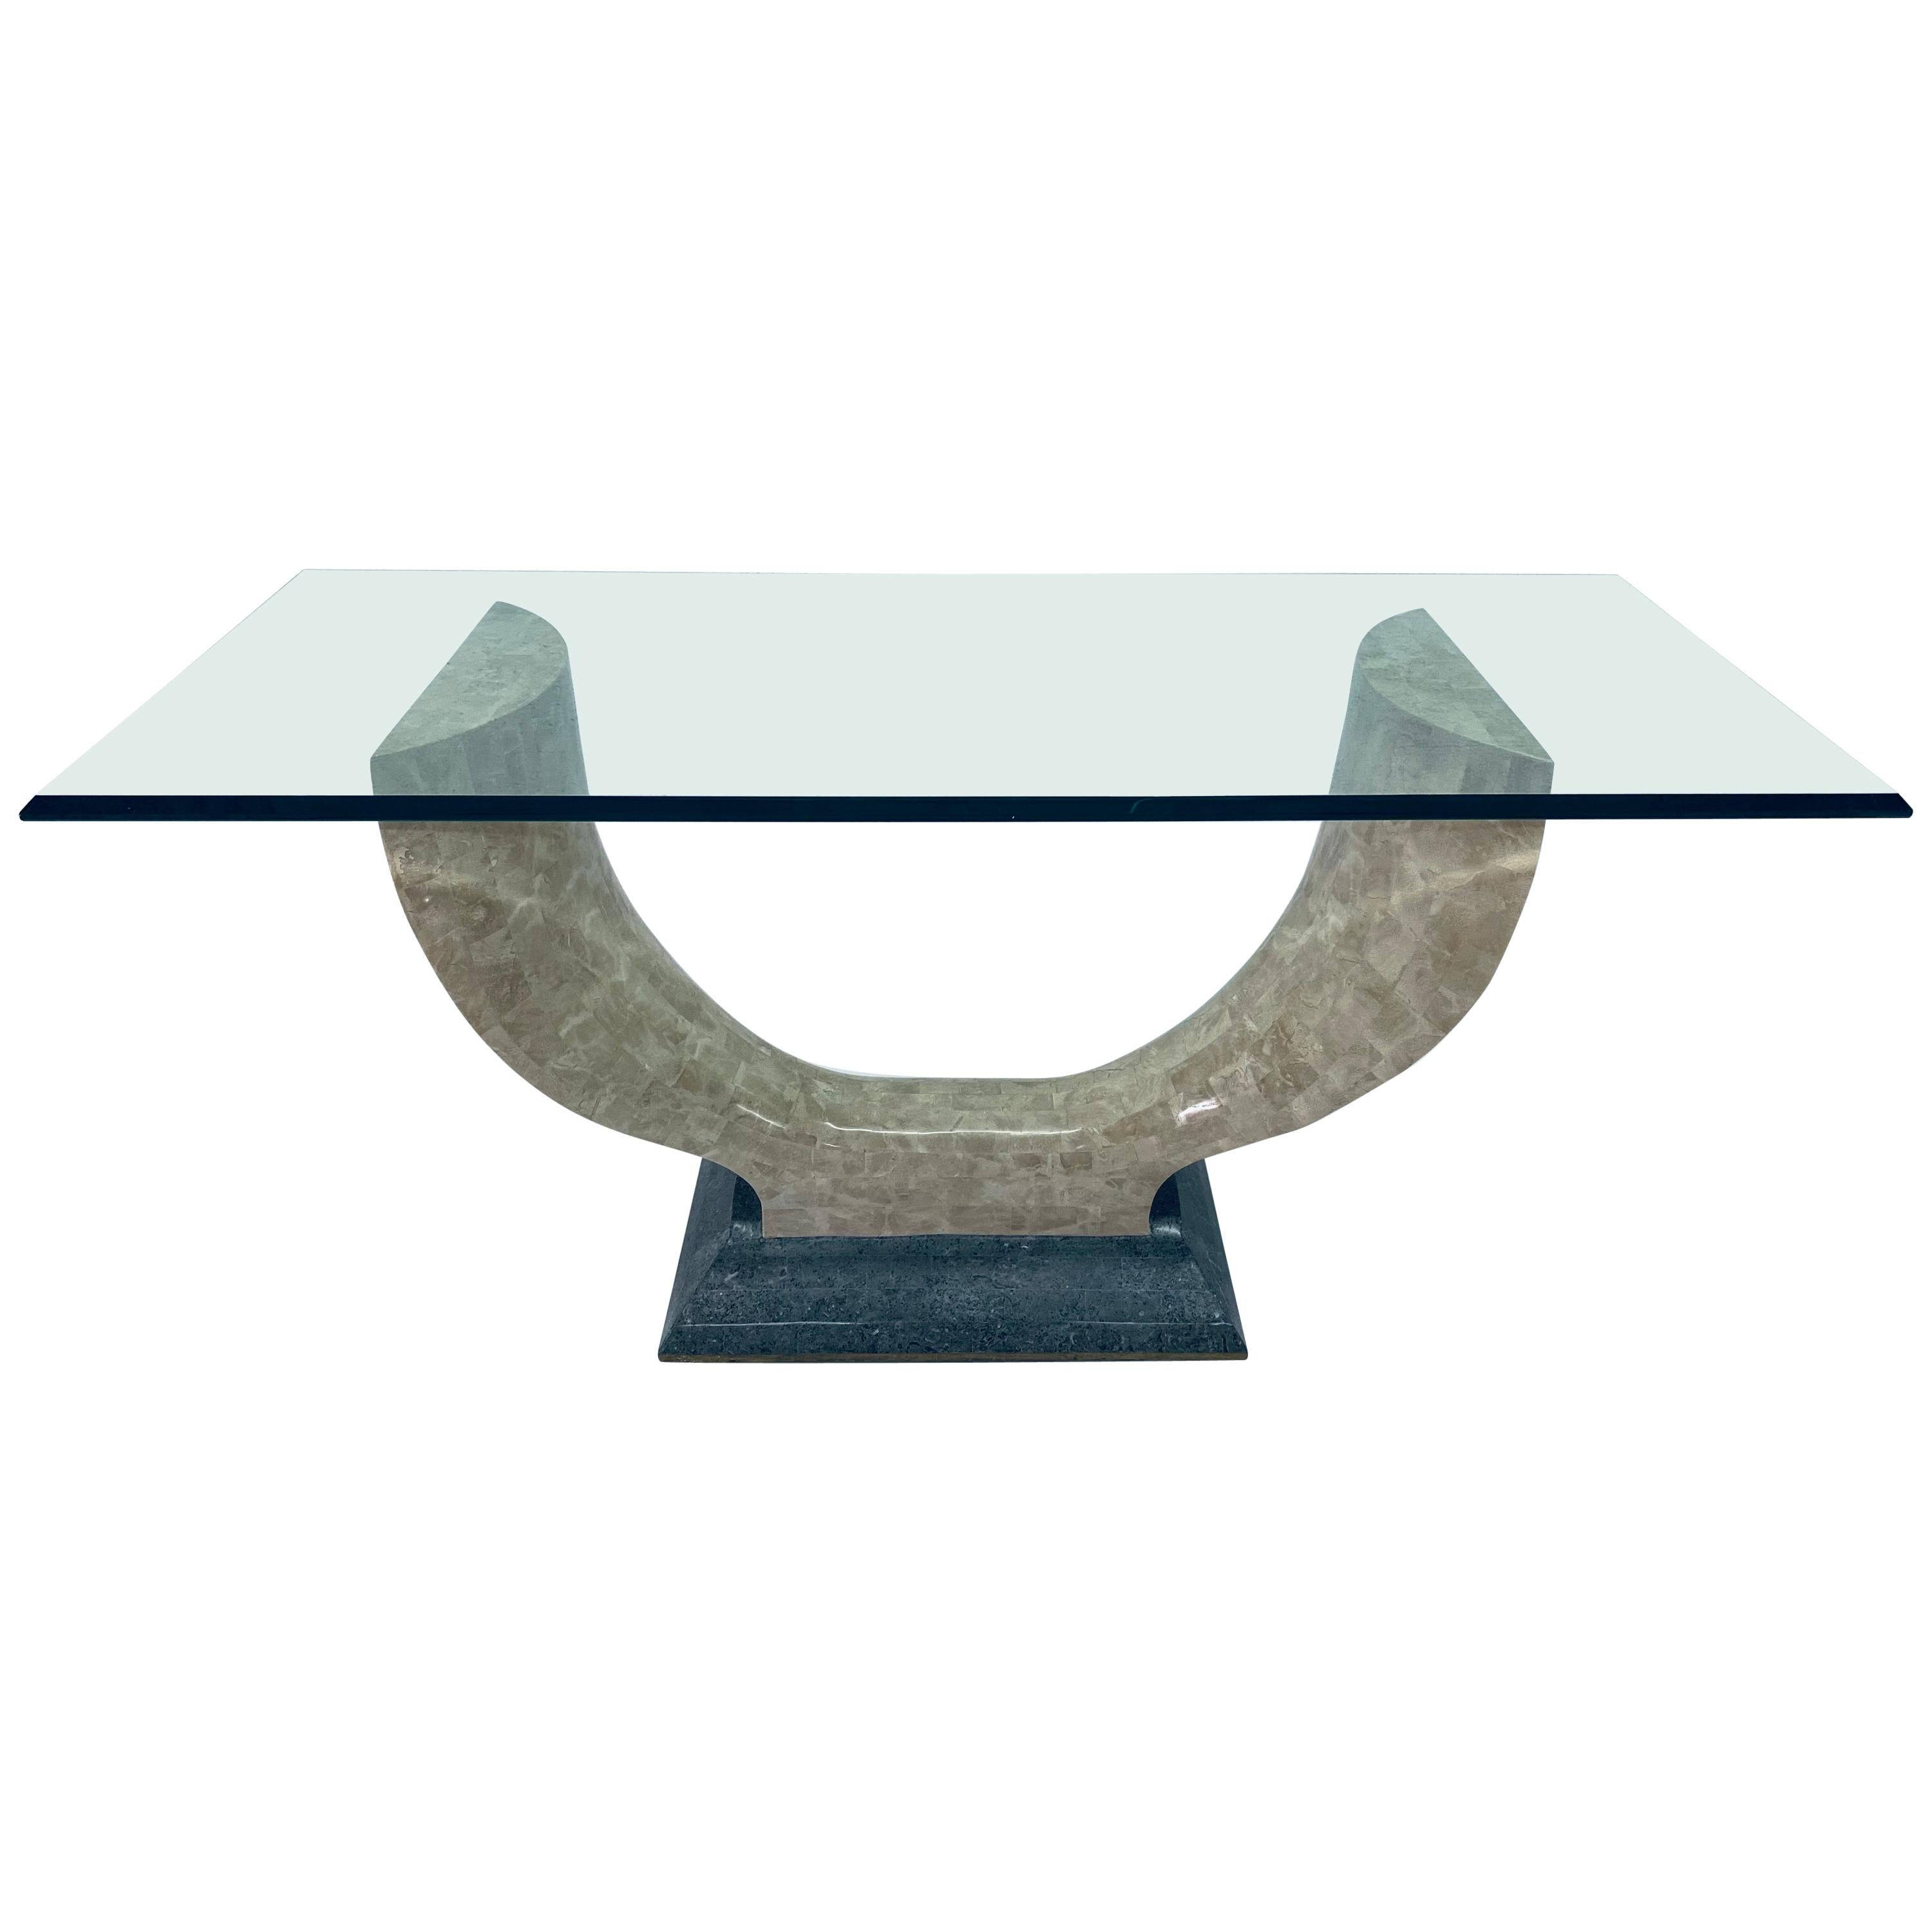 Maitland Smith Tessellated Stone Console Table with Beveled Glass Top